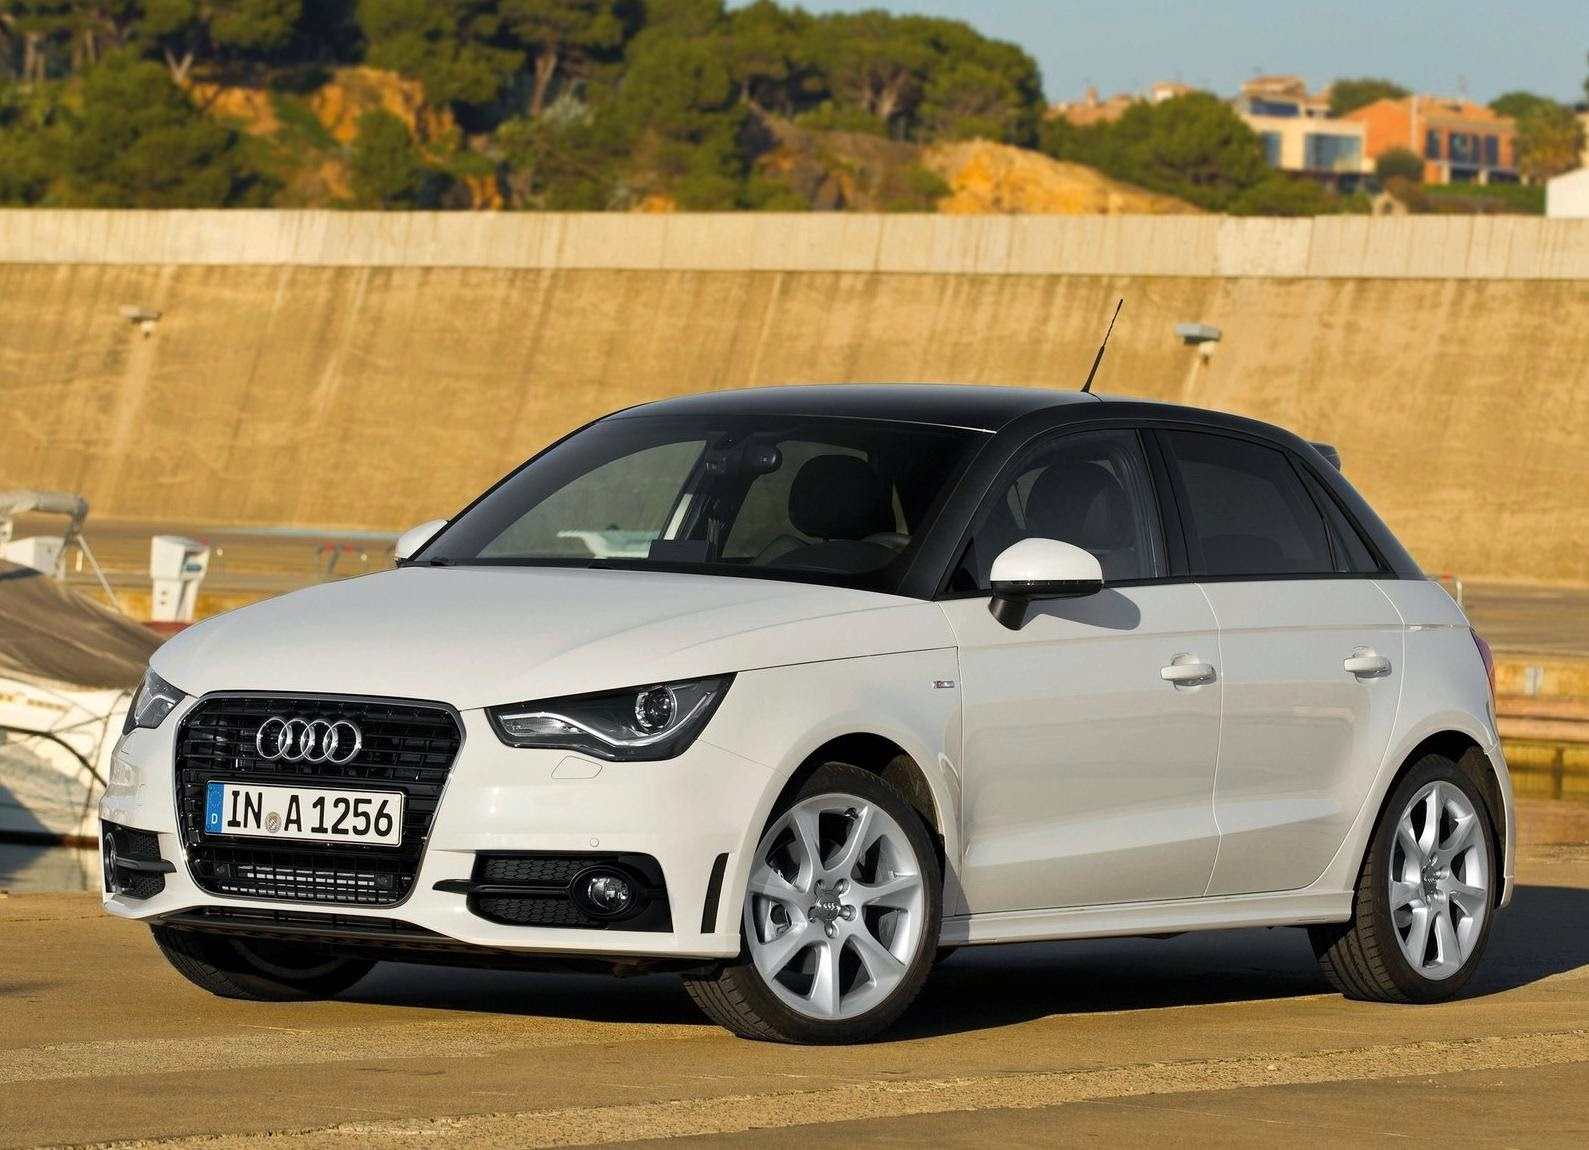 Audi A1 Sportback 2012 Desktop Wallpaper